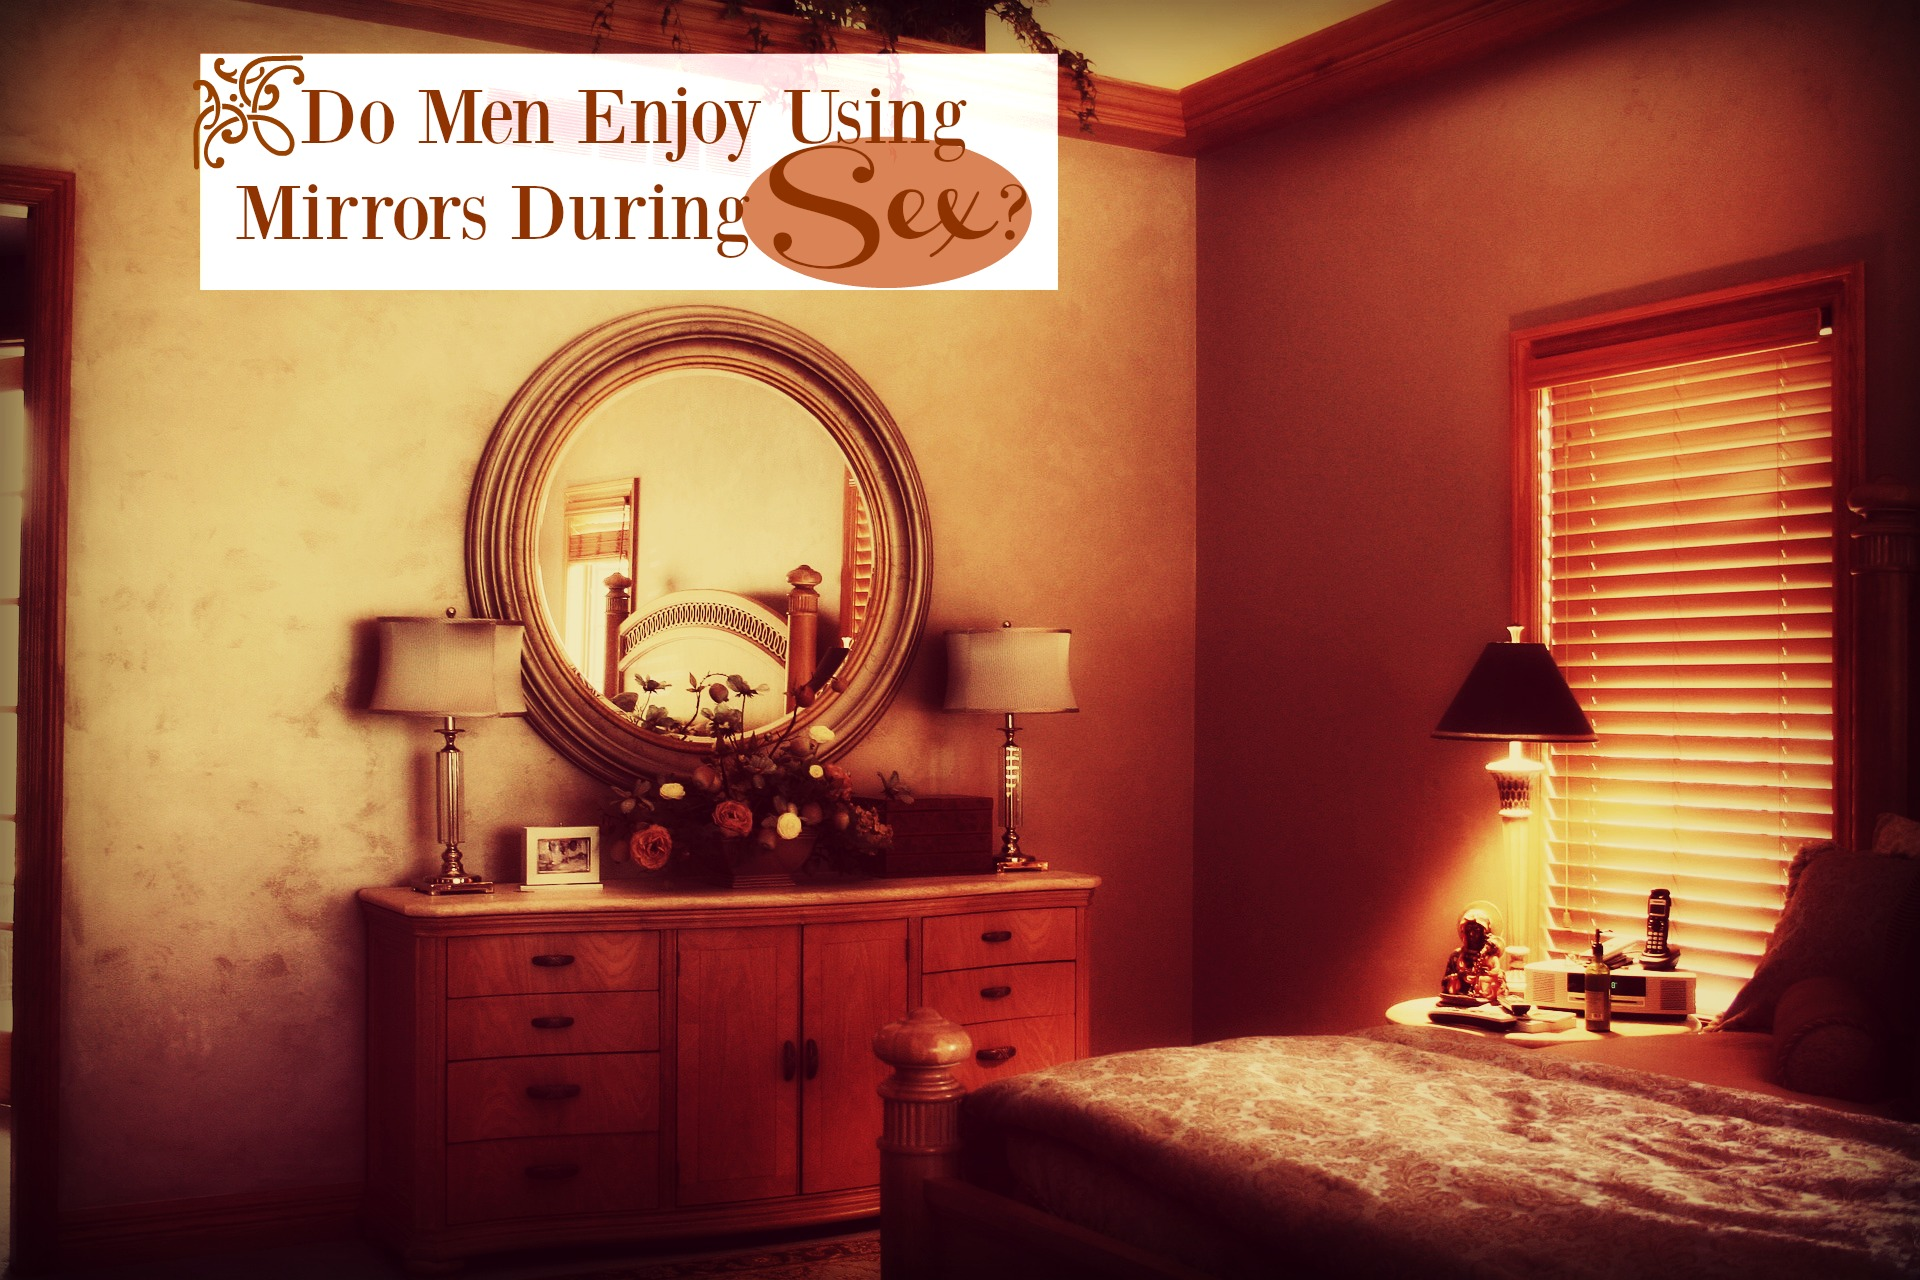 I've received this question a few times over the last week. The readers want to know if husbands like using mirrors during physical intimacy.